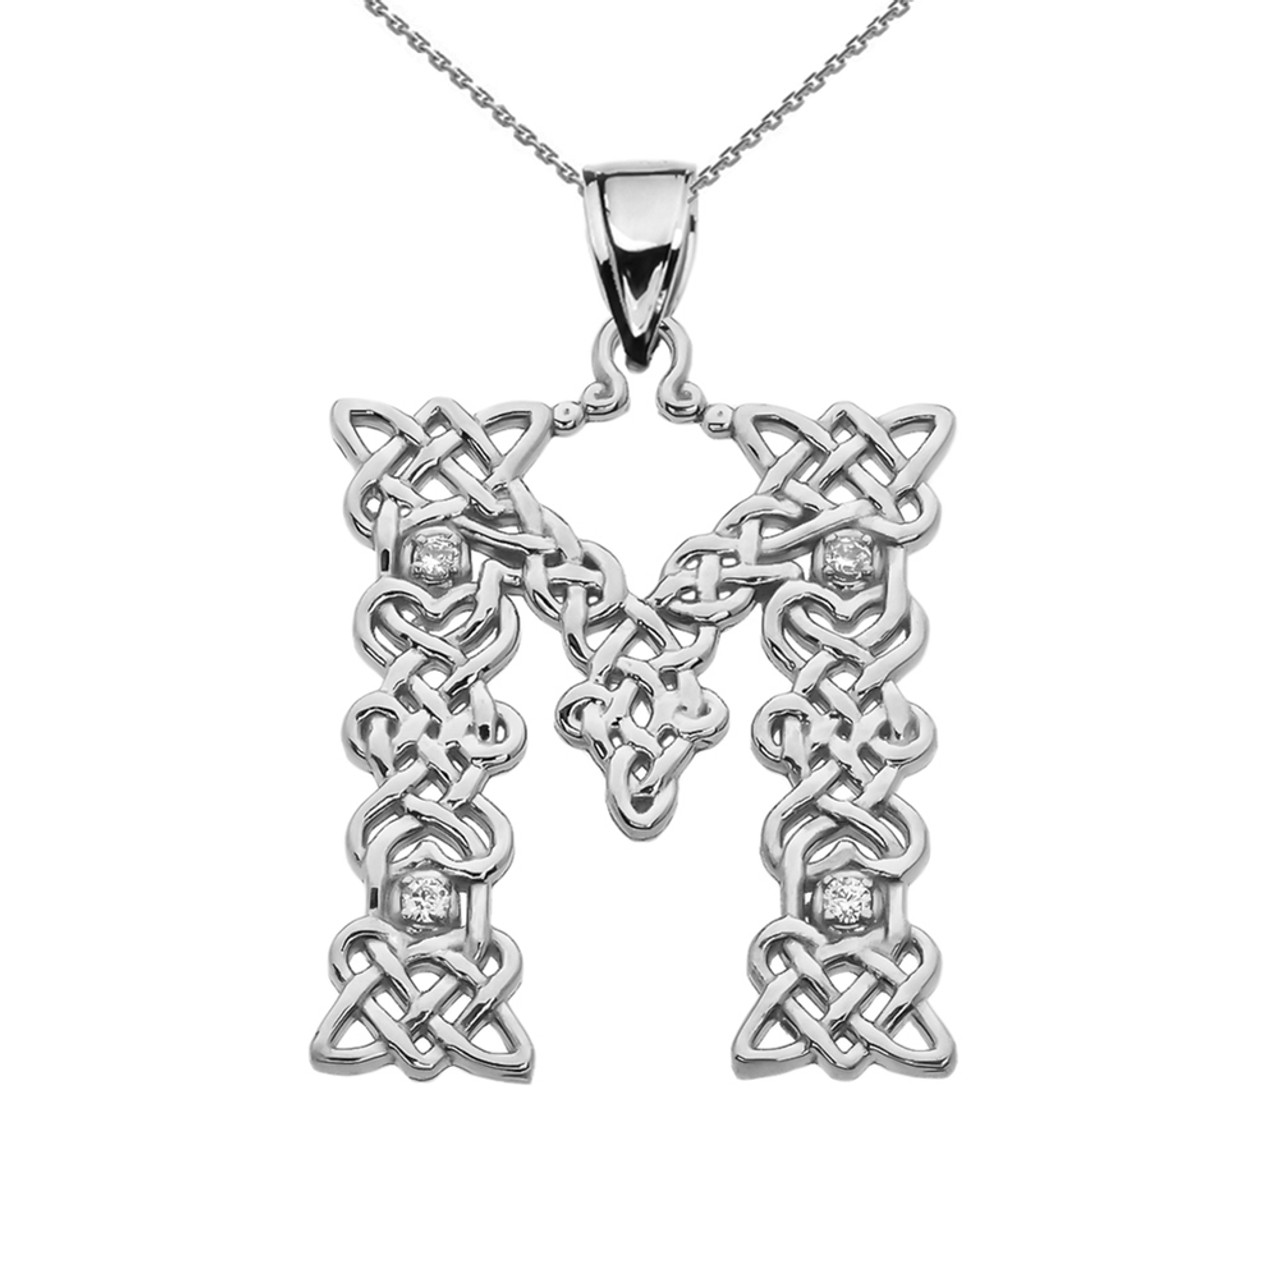 Cz m initial in celtic pattern sterling silver pendant necklace m initial in celtic knot pattern sterling silver pendant necklace with cz aloadofball Gallery